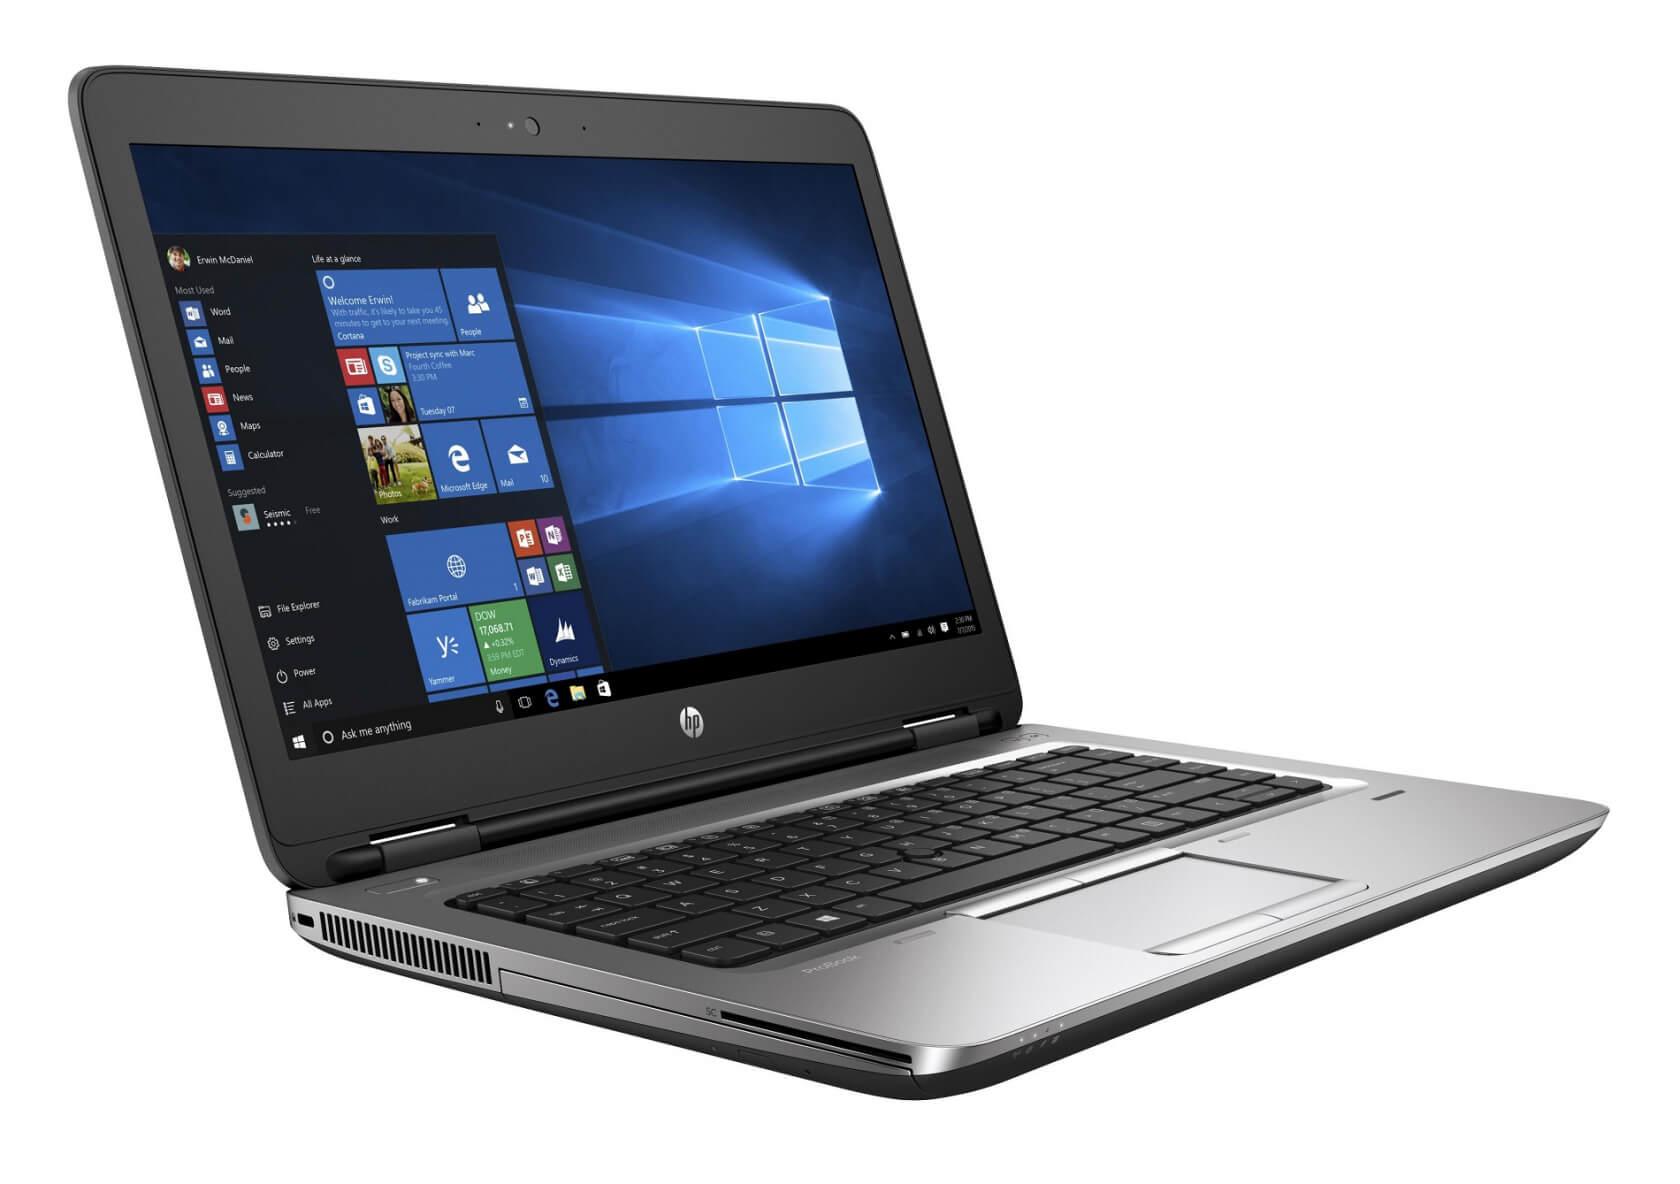 HP Issues Recall of 50000 Laptop Batteries Due to Fire Risk